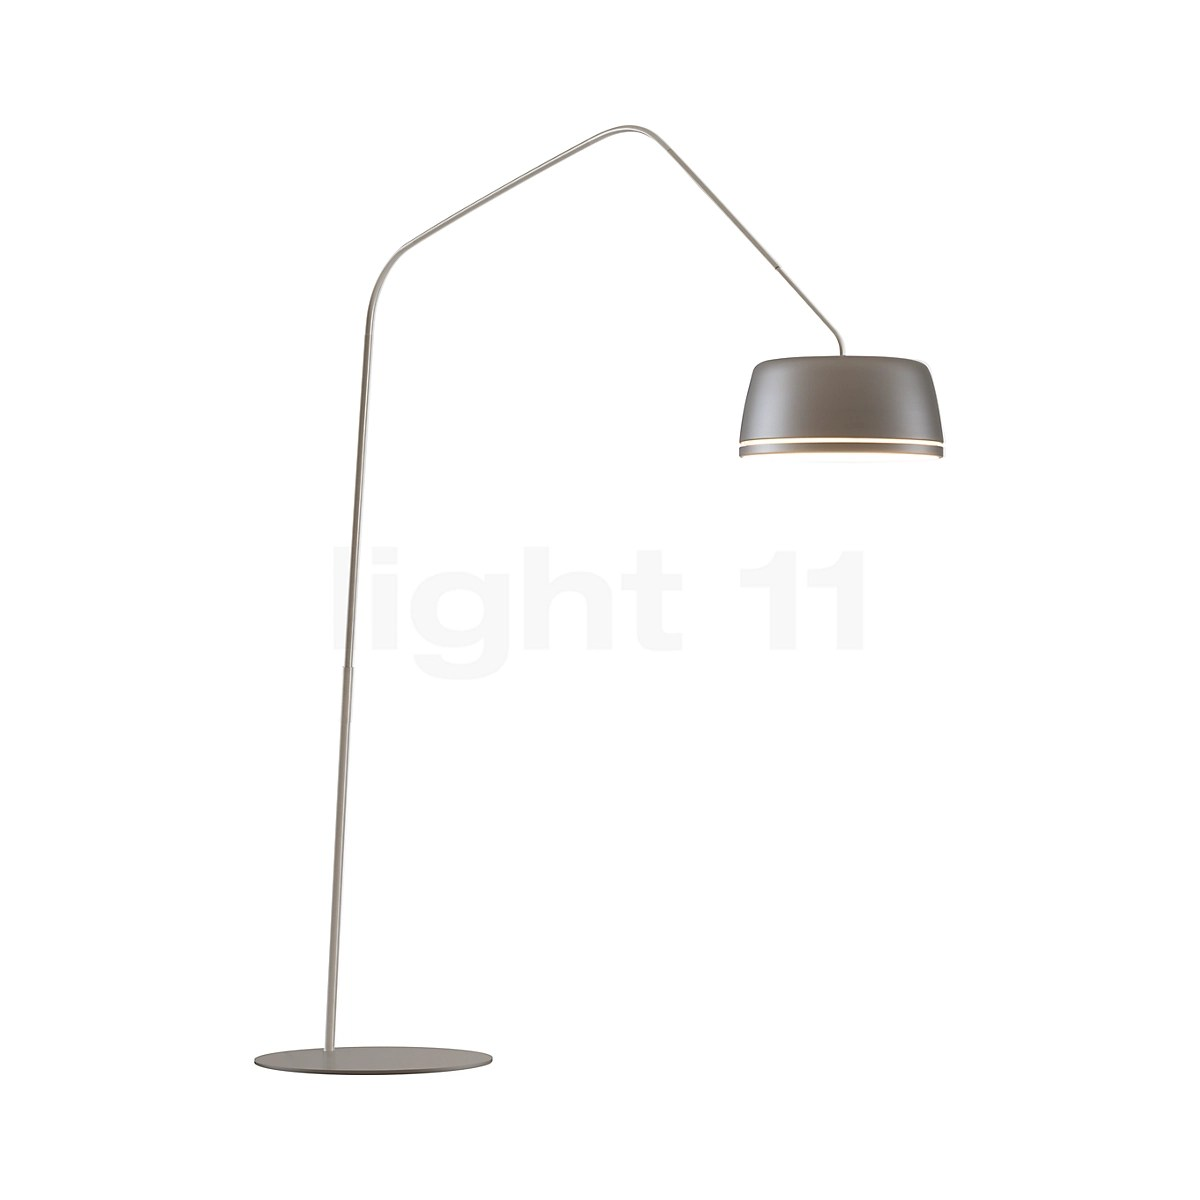 Led Küchenlampe Buy Serien Lighting Central Arc Lamp Led With Rotary Dimmer At